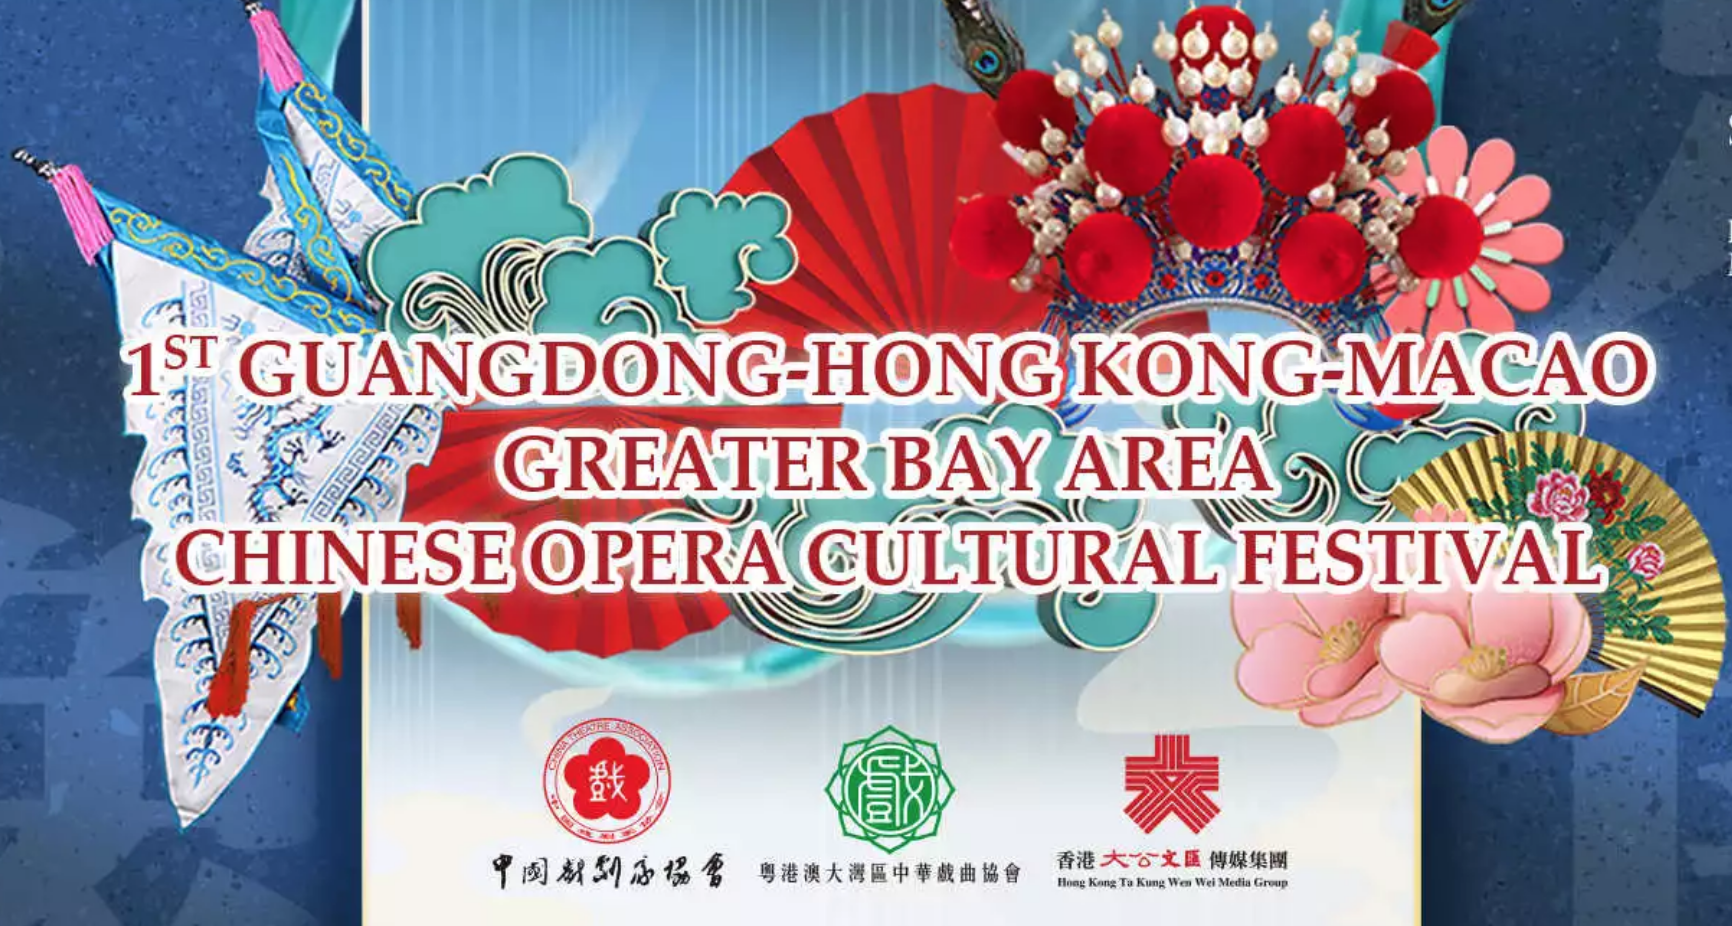 1st Guangdong-Hong Kong-Macao Greater Bay Area Chinese Opera Cultural Festival Poster